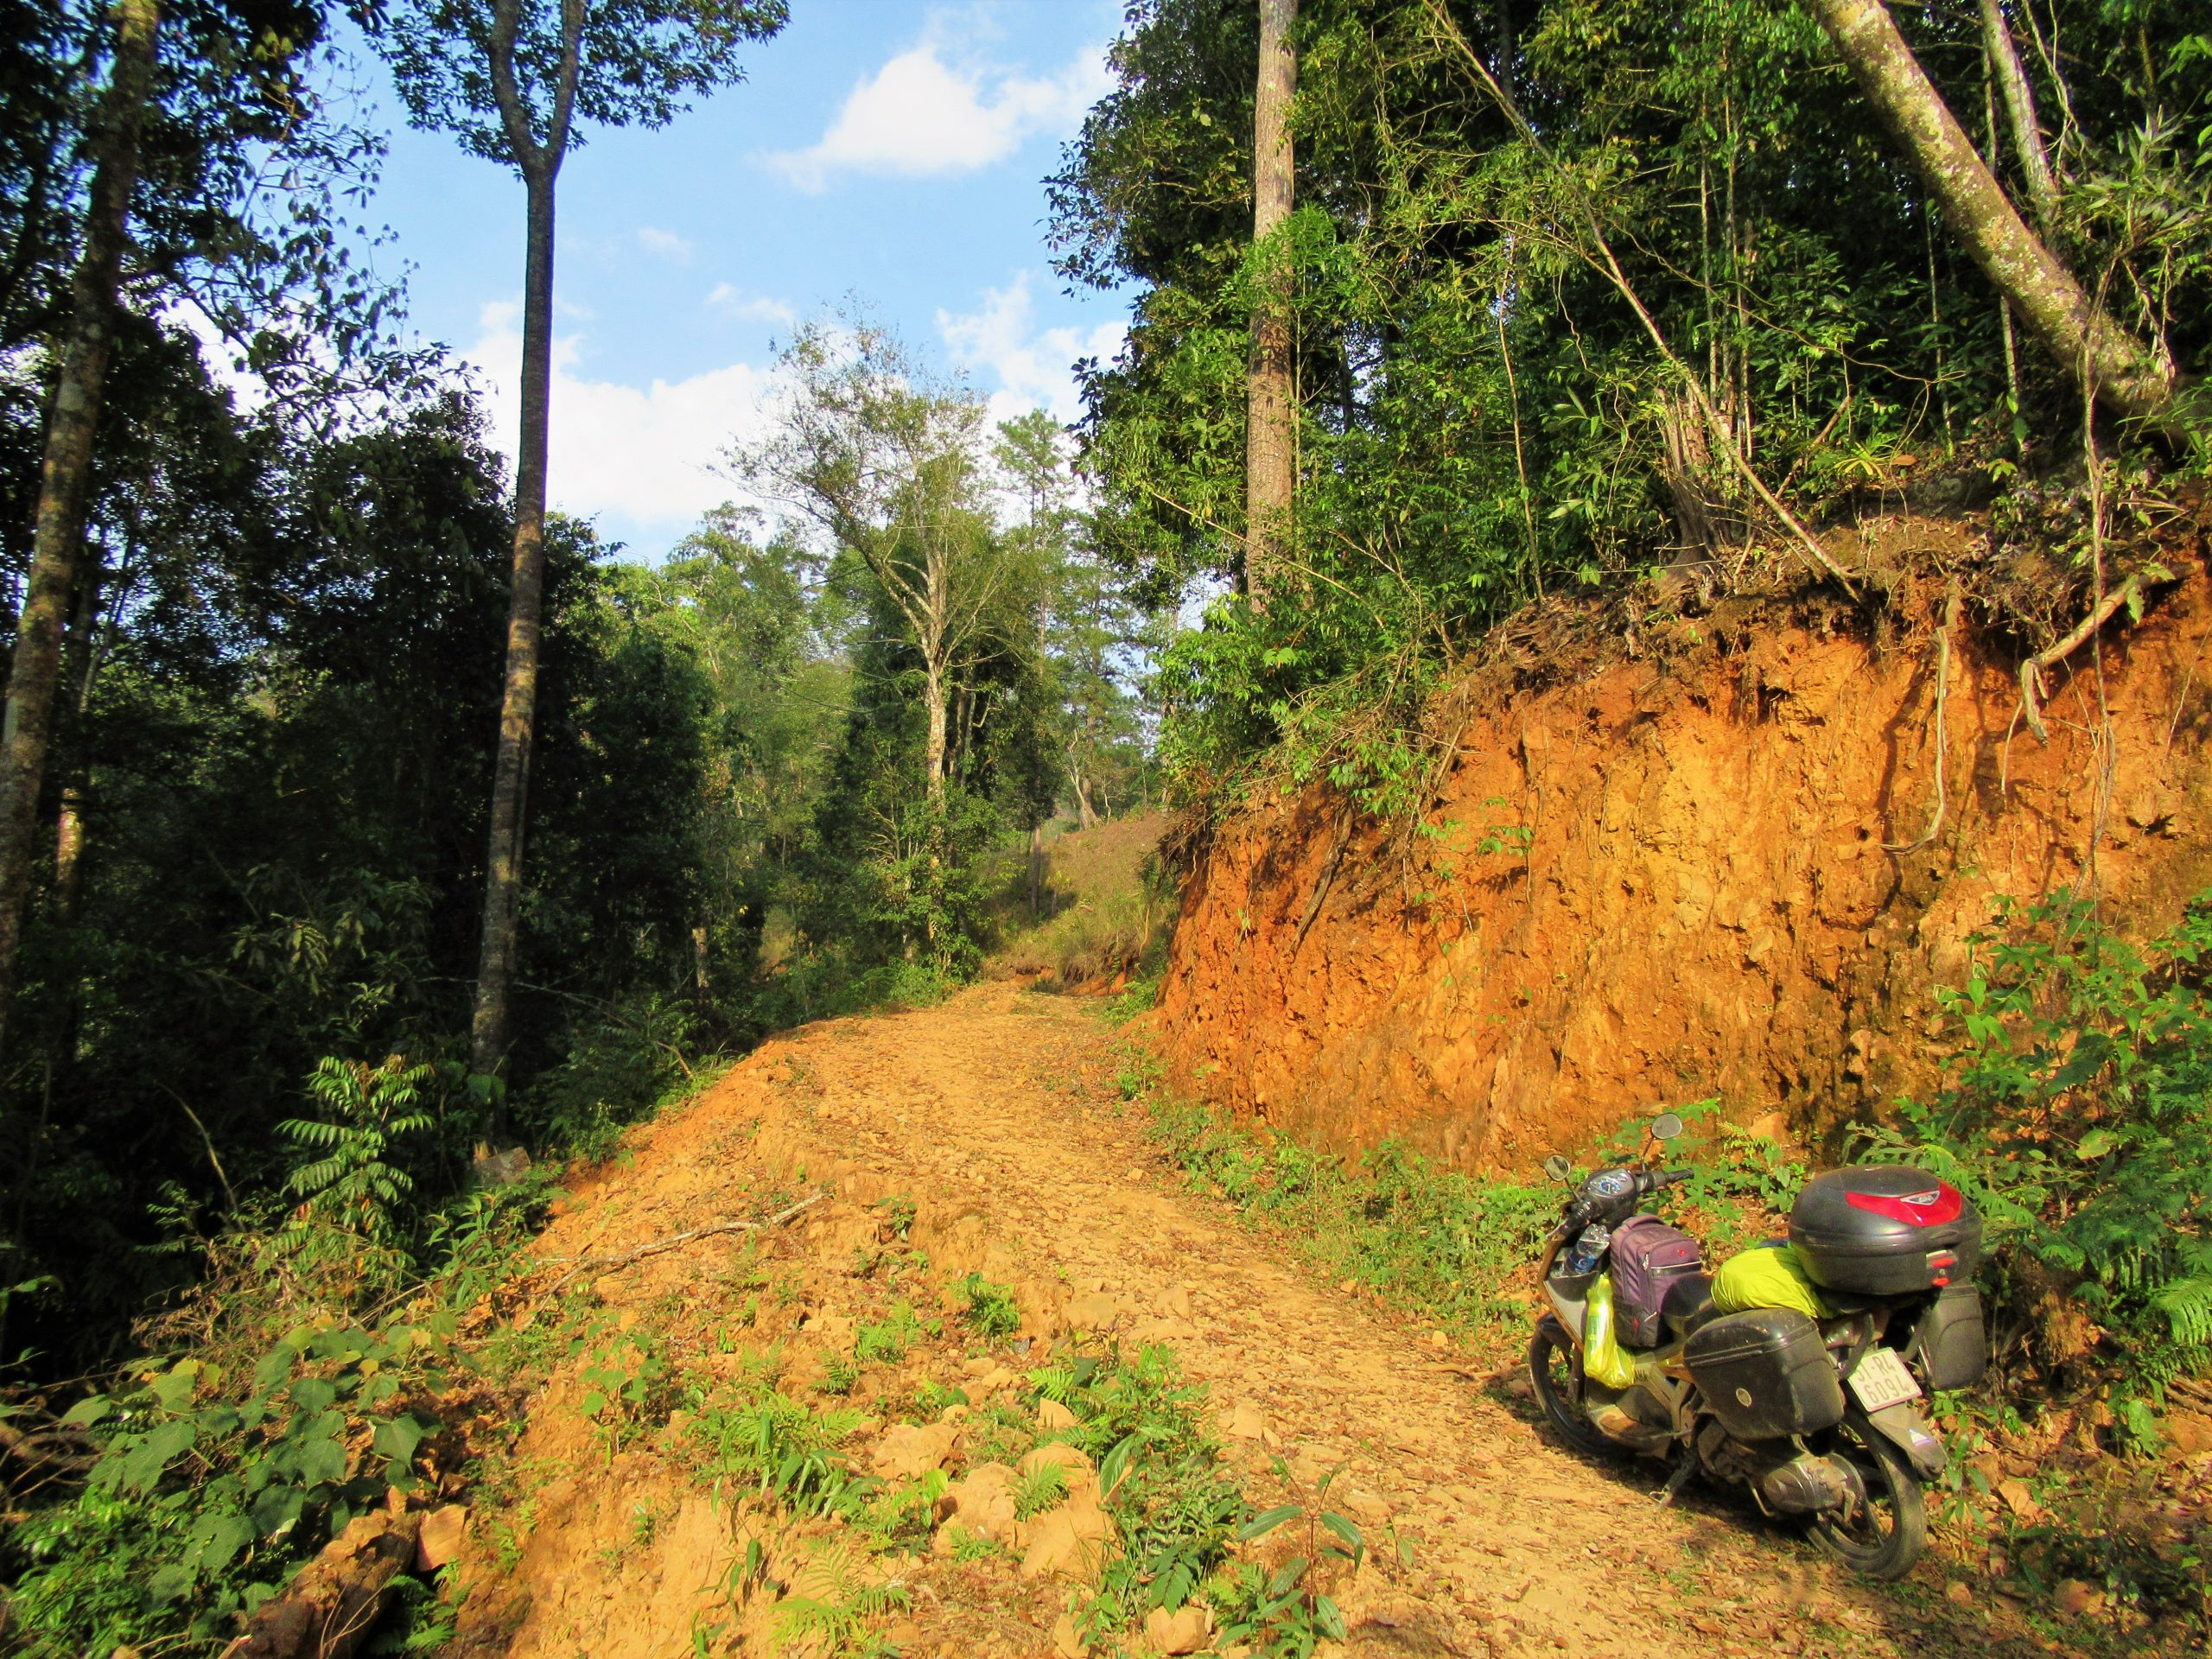 Dirt tracks into the pine forests near Dalat,  searching for a campsite, Central Highlands